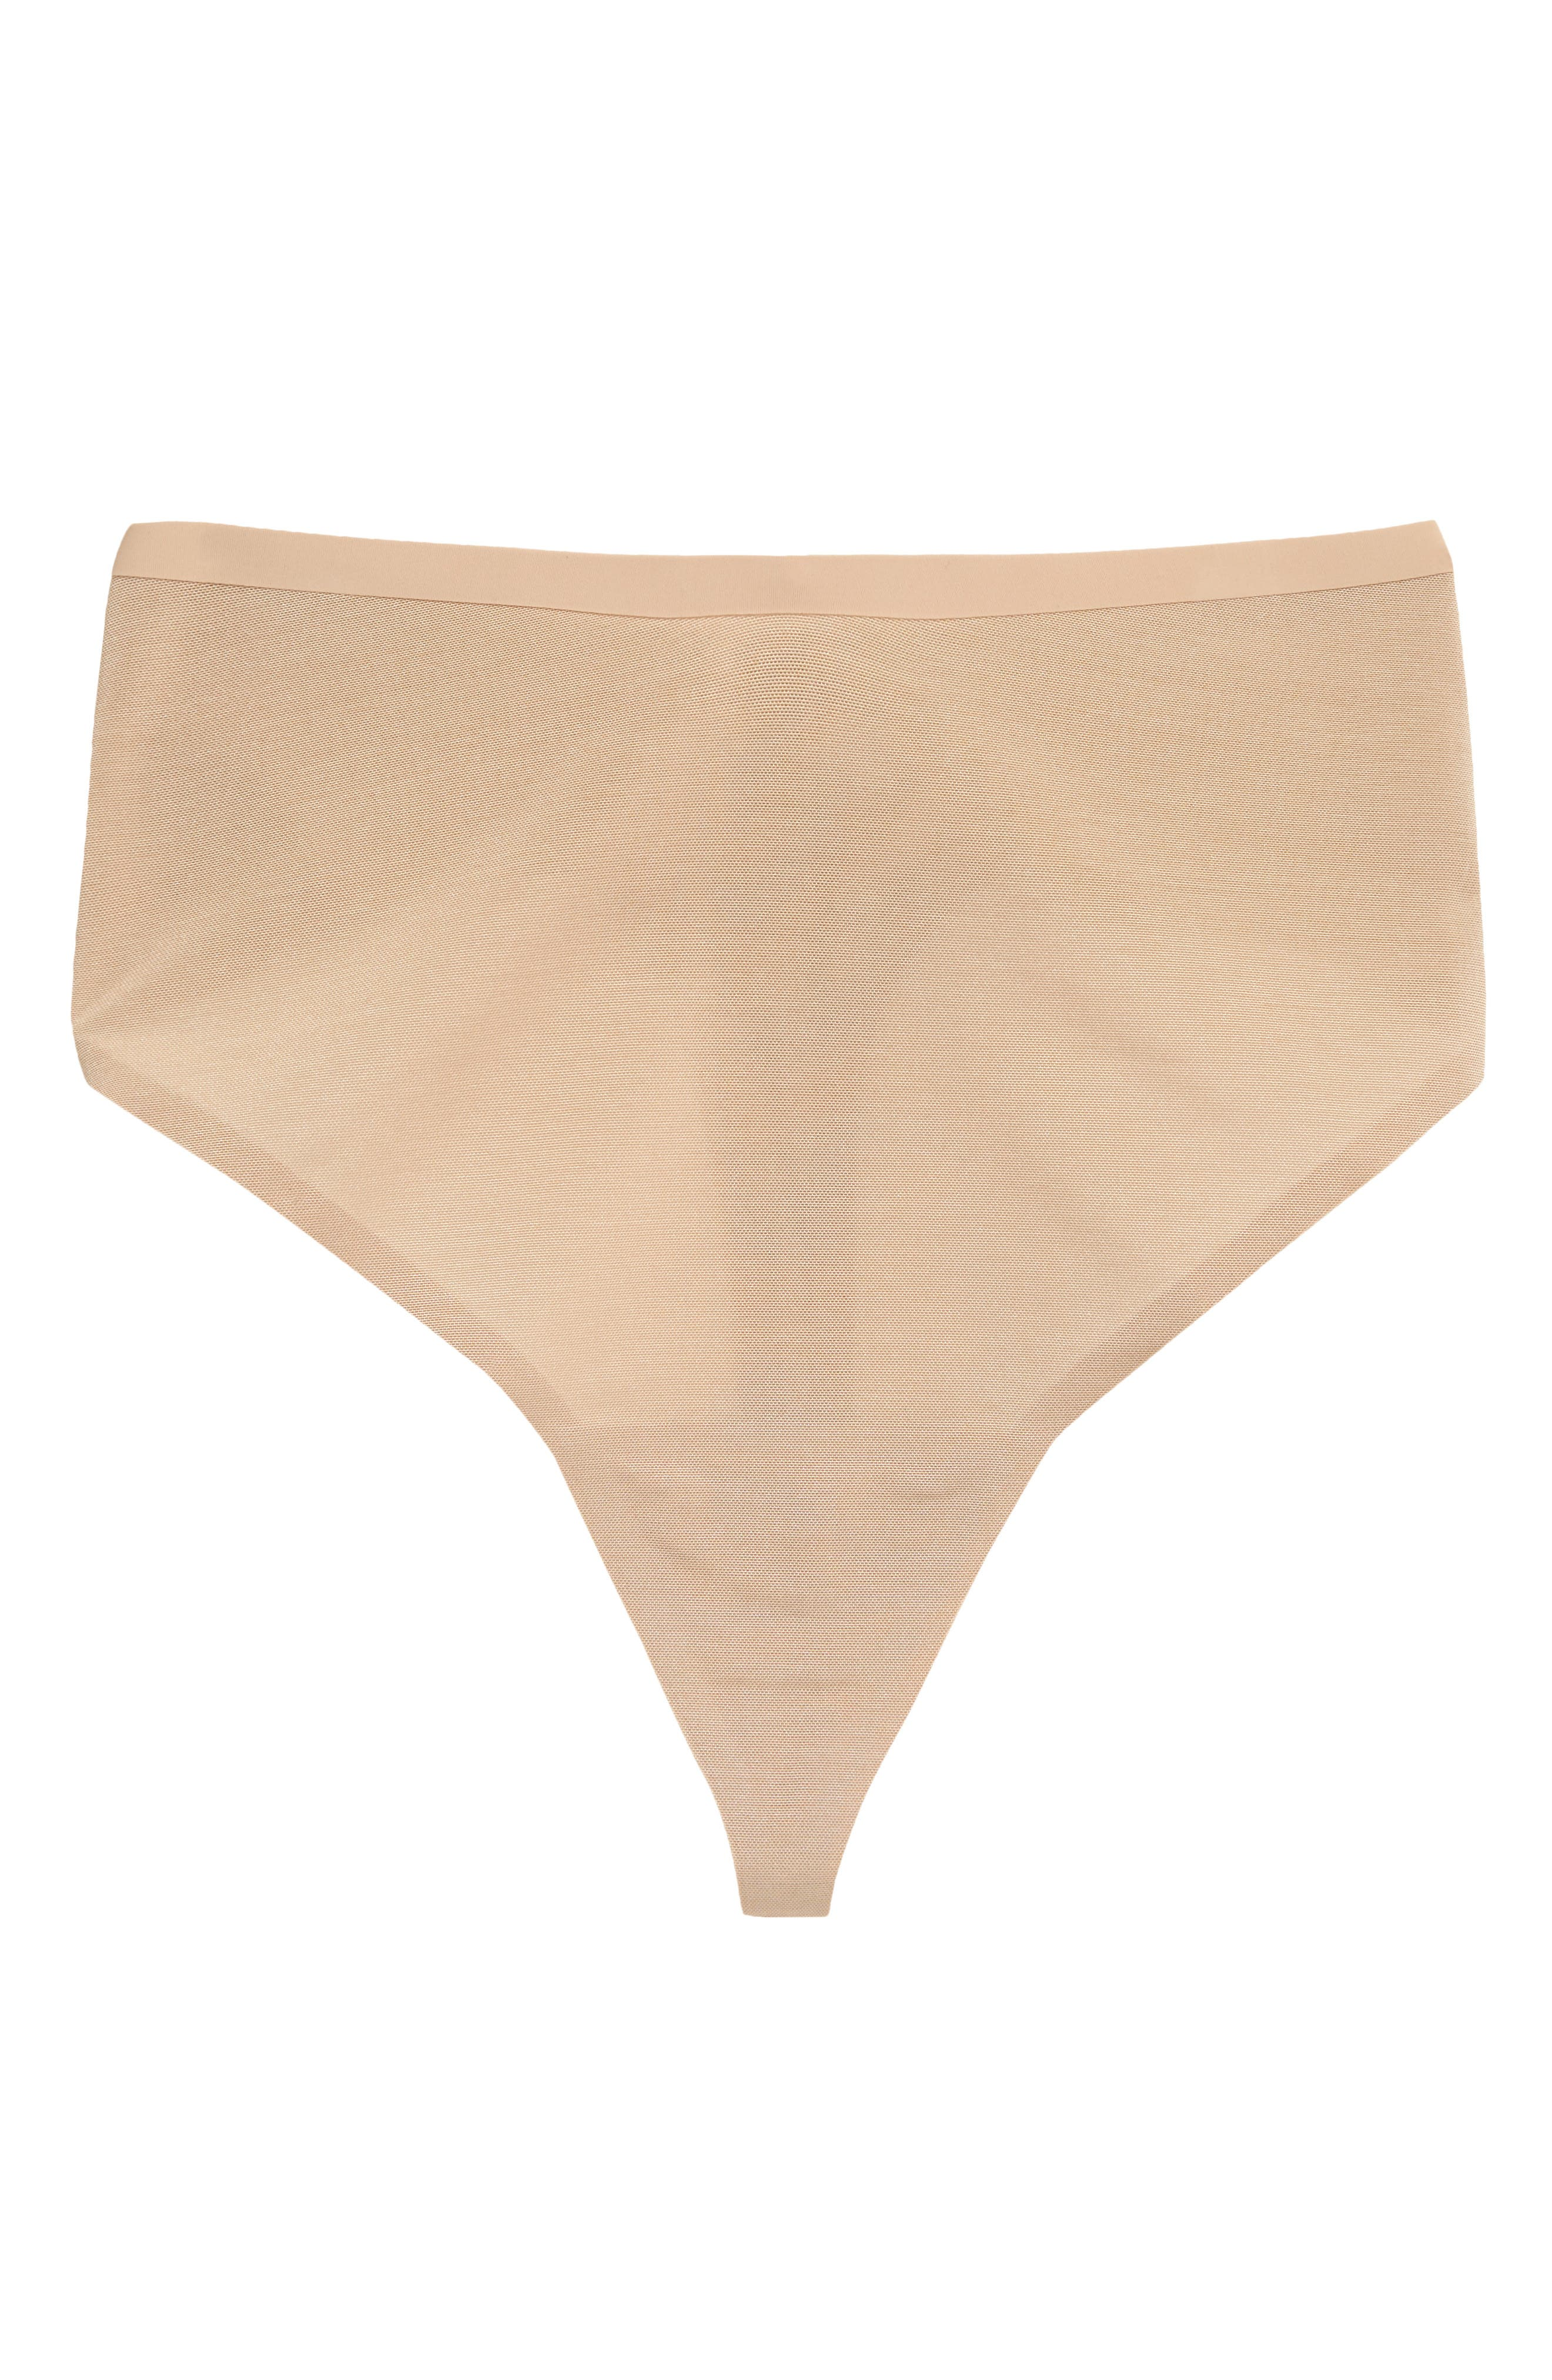 Designed to provide light compression and smoothing, this thong from Kim Kardashian West\\\'s SKIMS sits at the natural waist and is invisible under clothes. Style Name: Skims Power Mesh Mid Waist Thong (Regular & Plus Size). Style Number: 6139504. Available in stores.